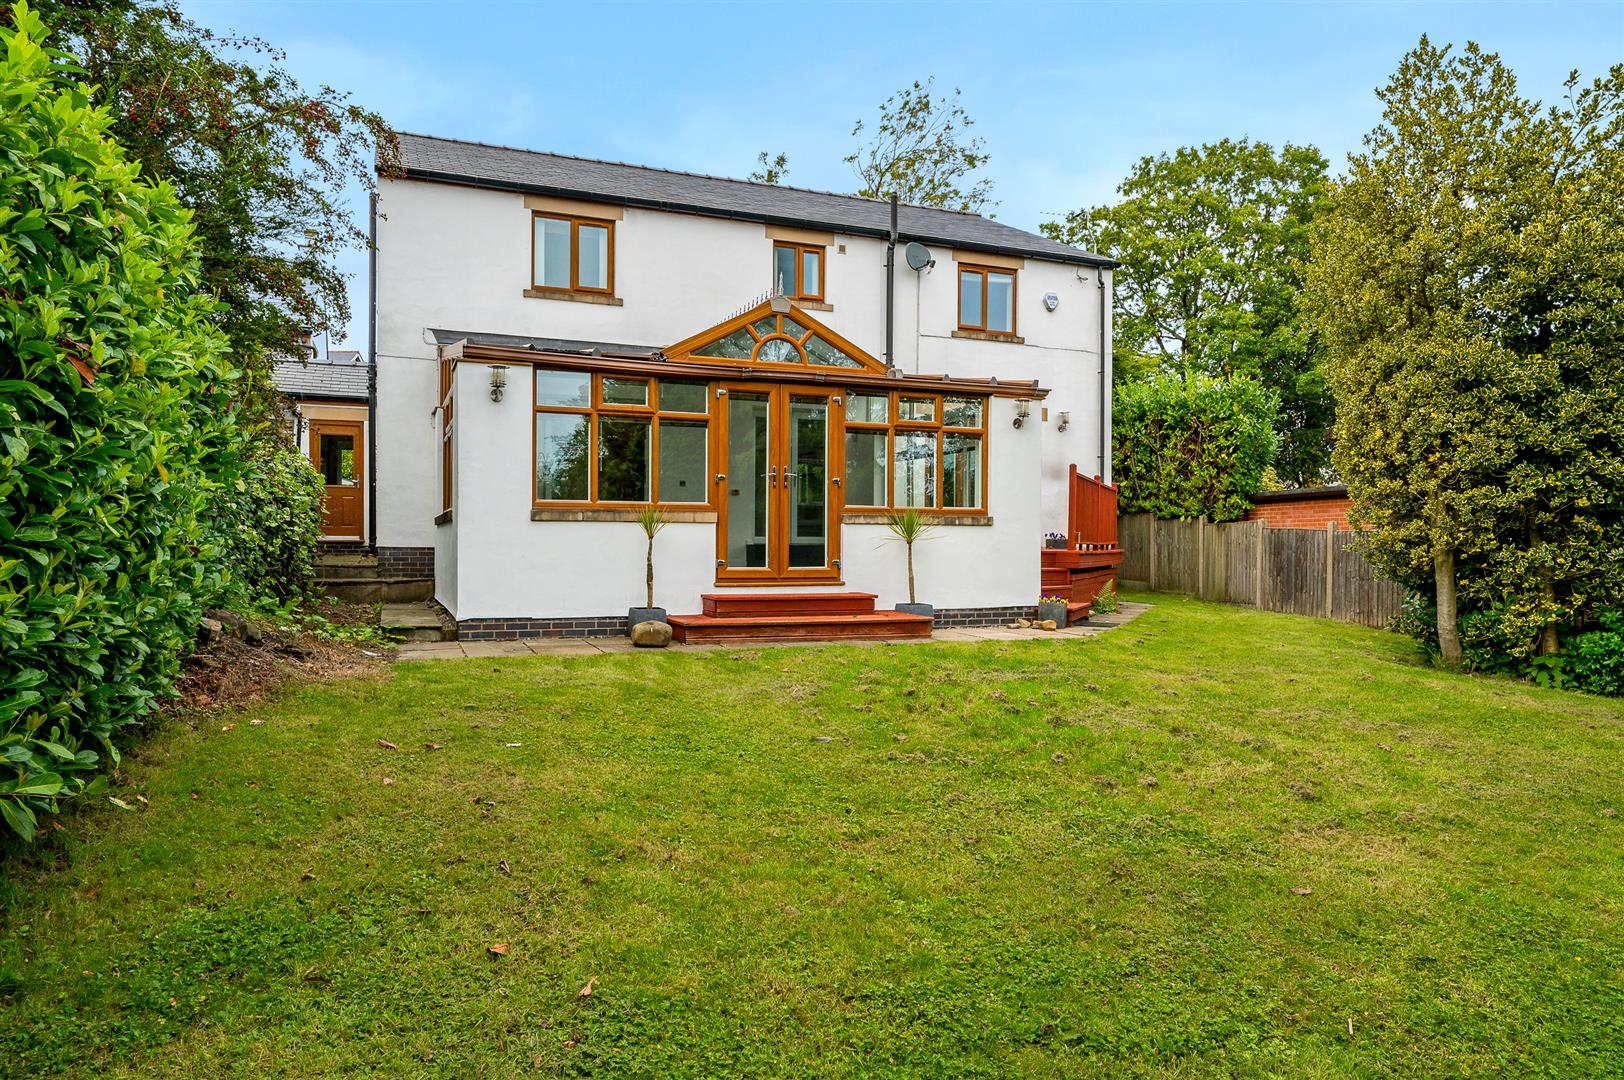 5 bedroom detached house For Sale in Bolton - DSC_2790.jpg.